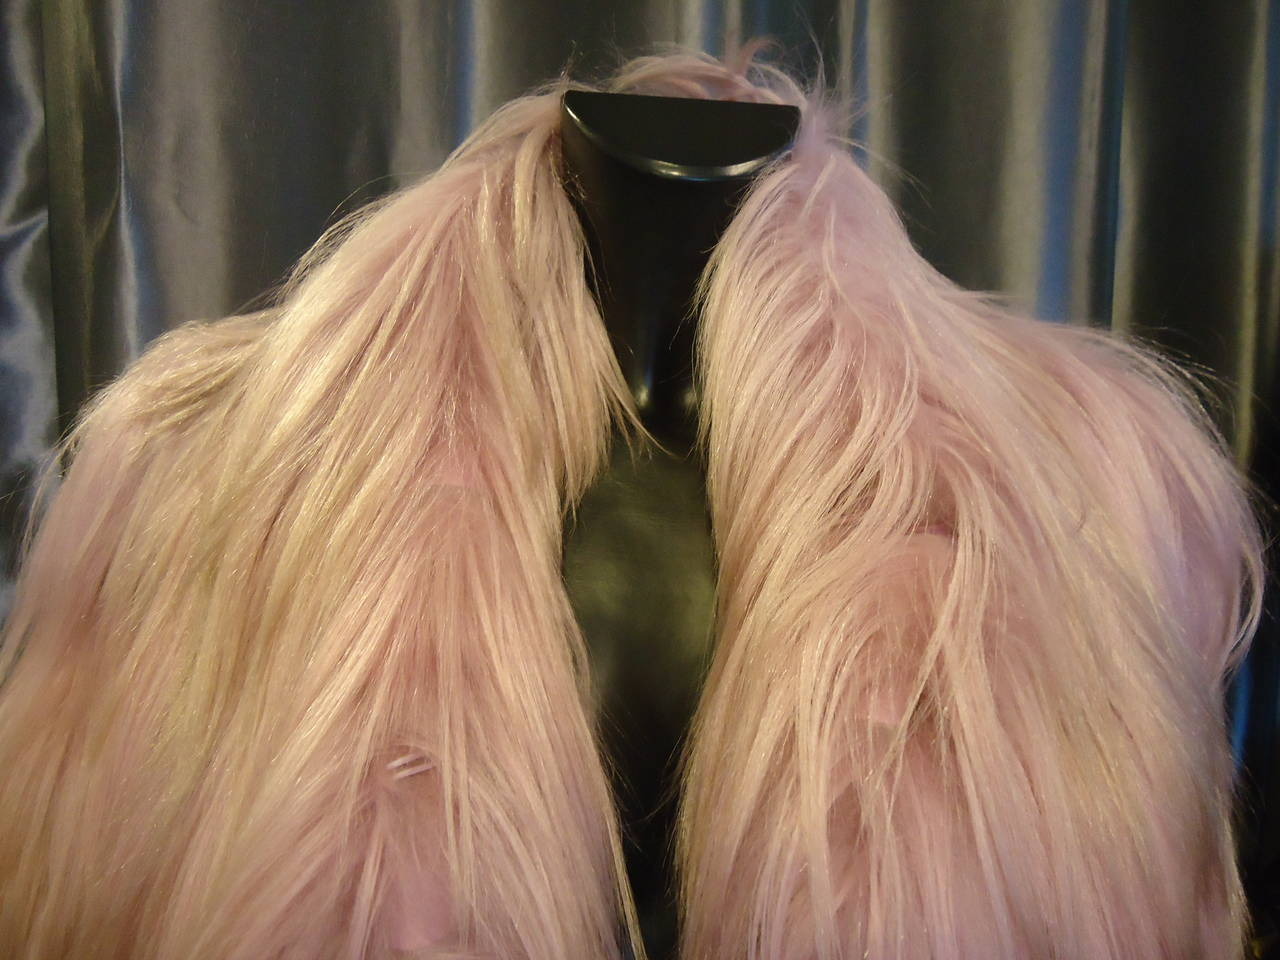 2001 Gucci by Tom Ford Pink Kidassia Fur Coat In Excellent Condition For Sale In Gazzaniga (BG), IT